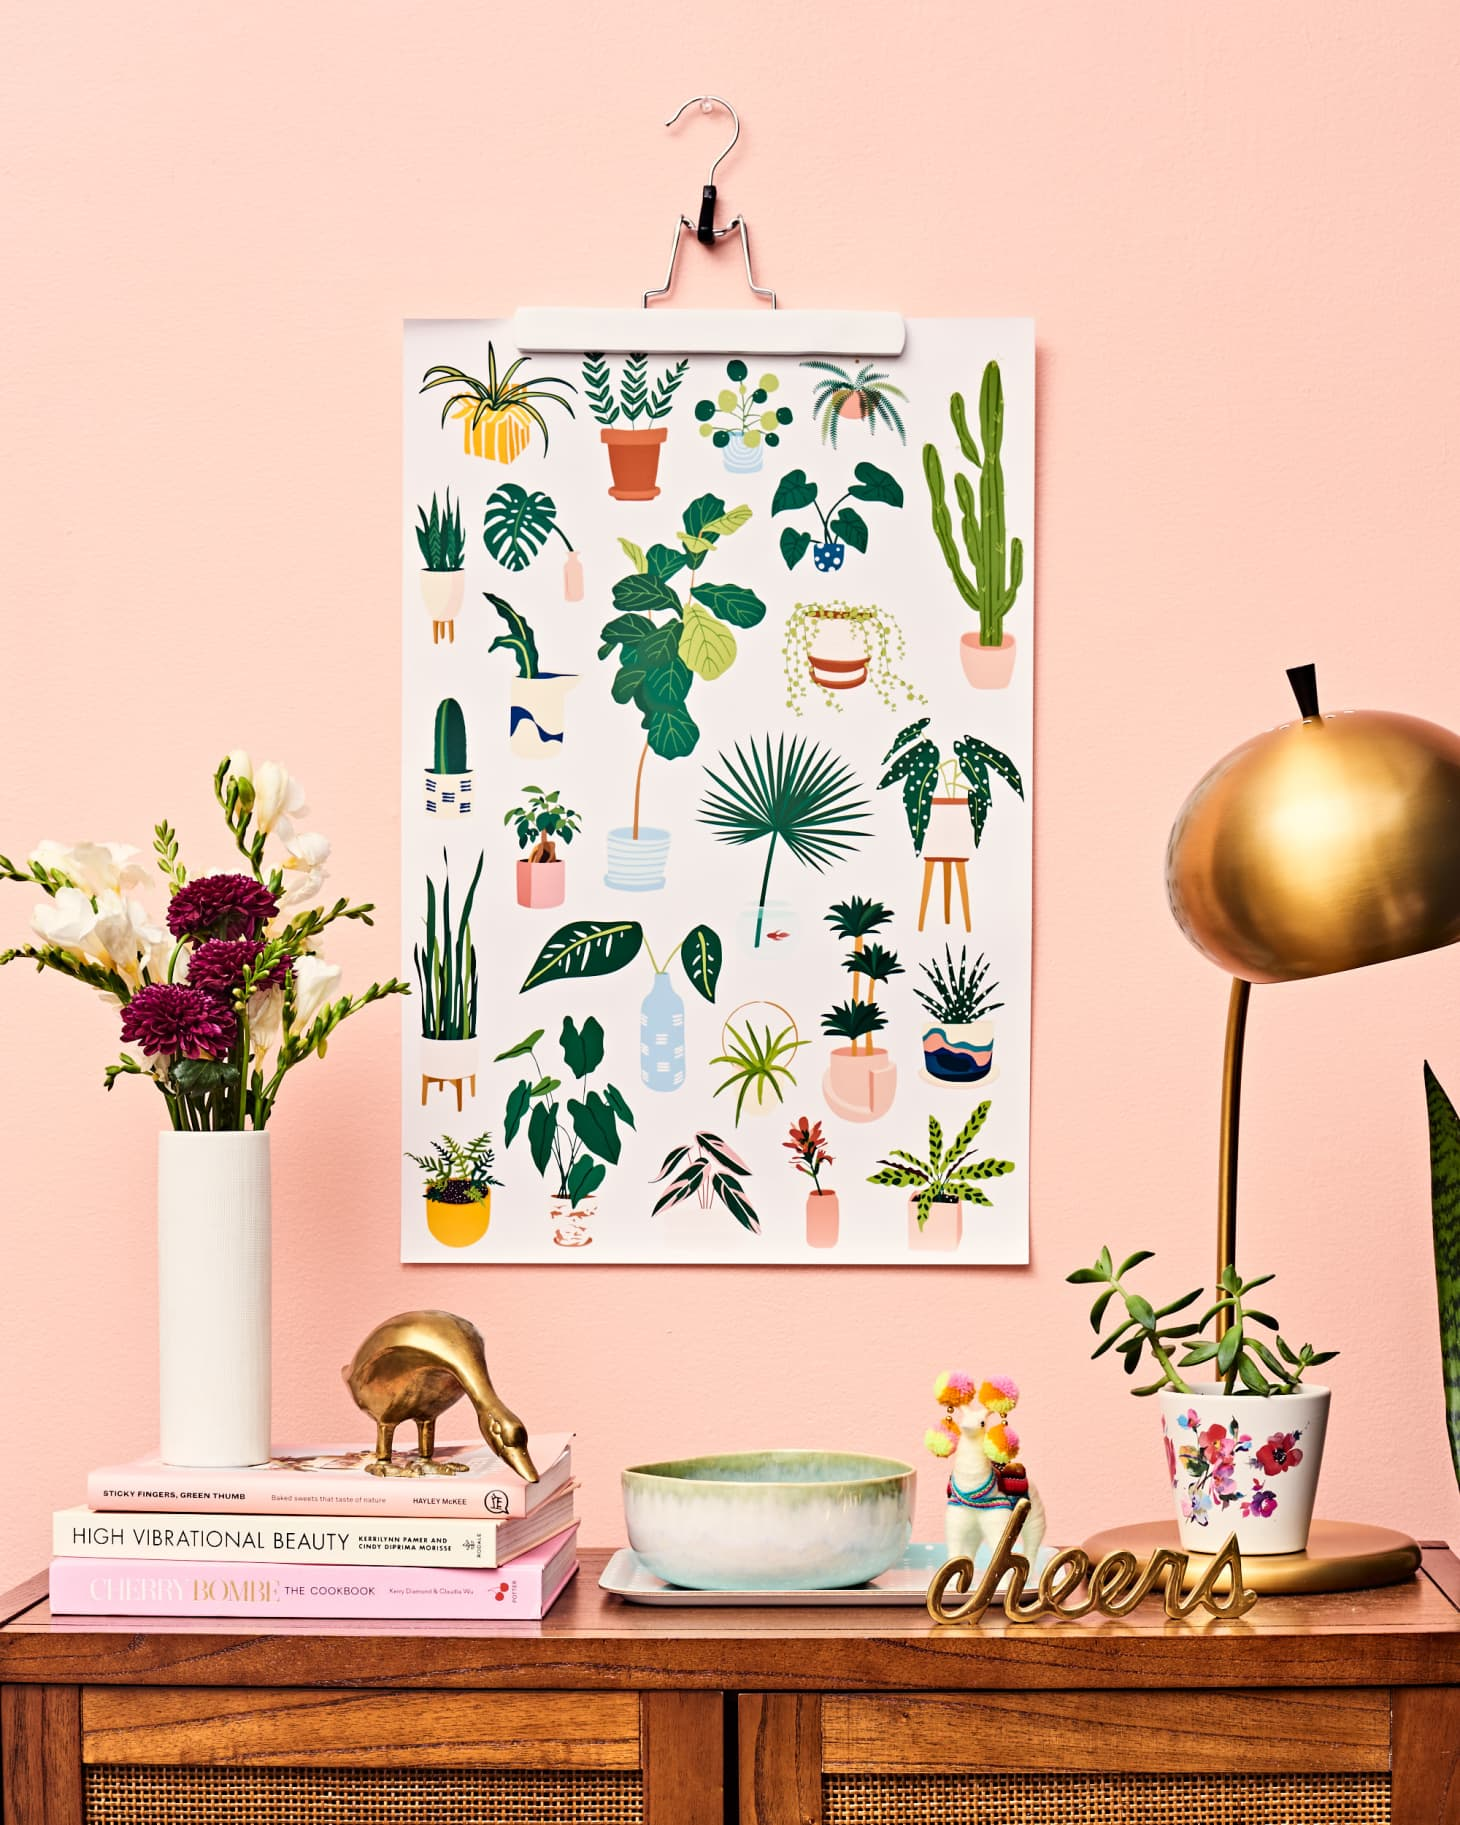 Diy ideas to hang unframed posters apartment therapy